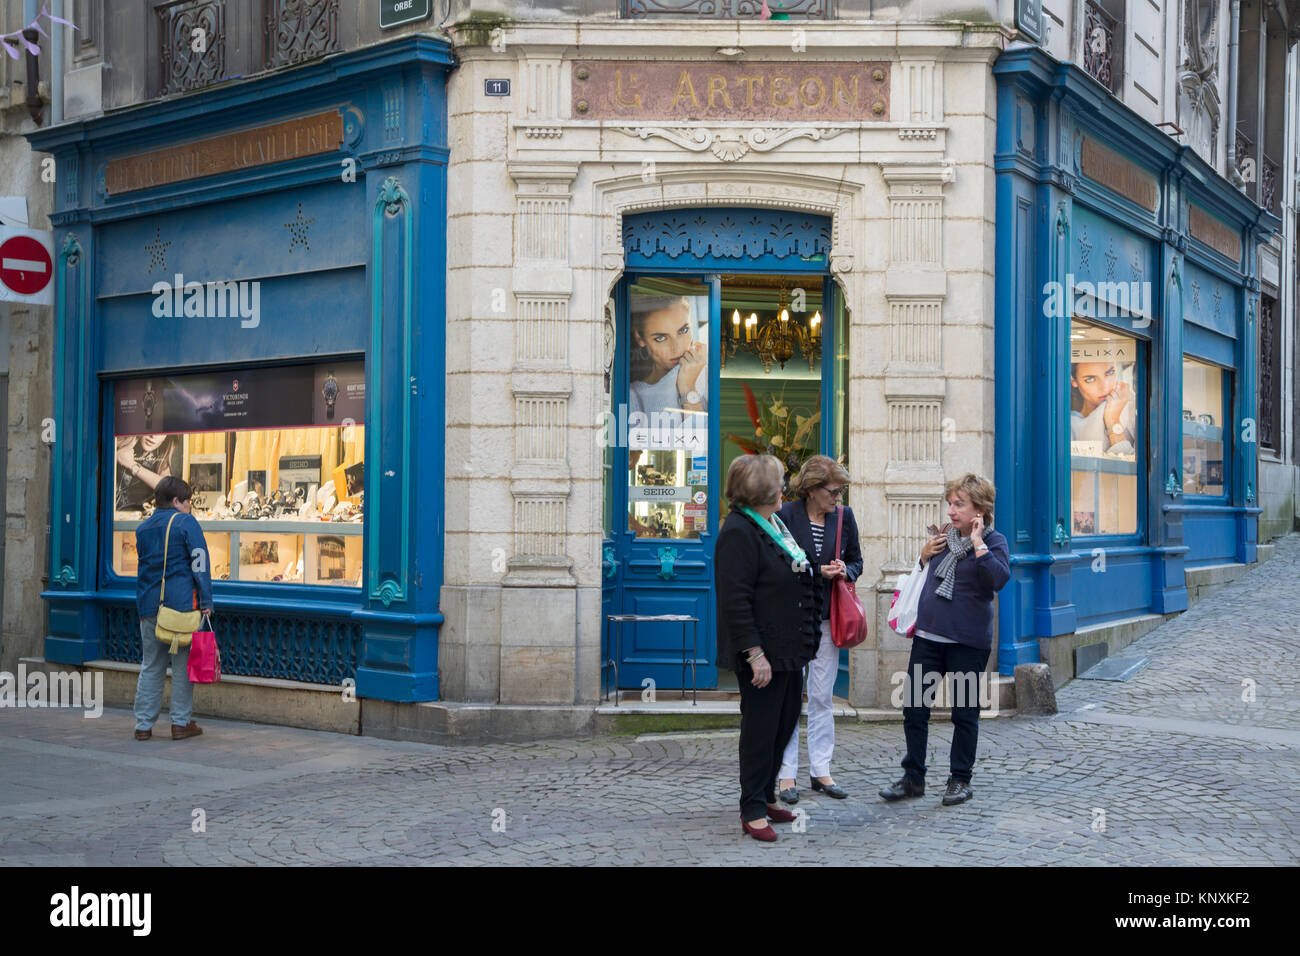 Cote Basque Philatelie Shop; Rue de la Monnaie Street; Bayonne; France Stock Photo